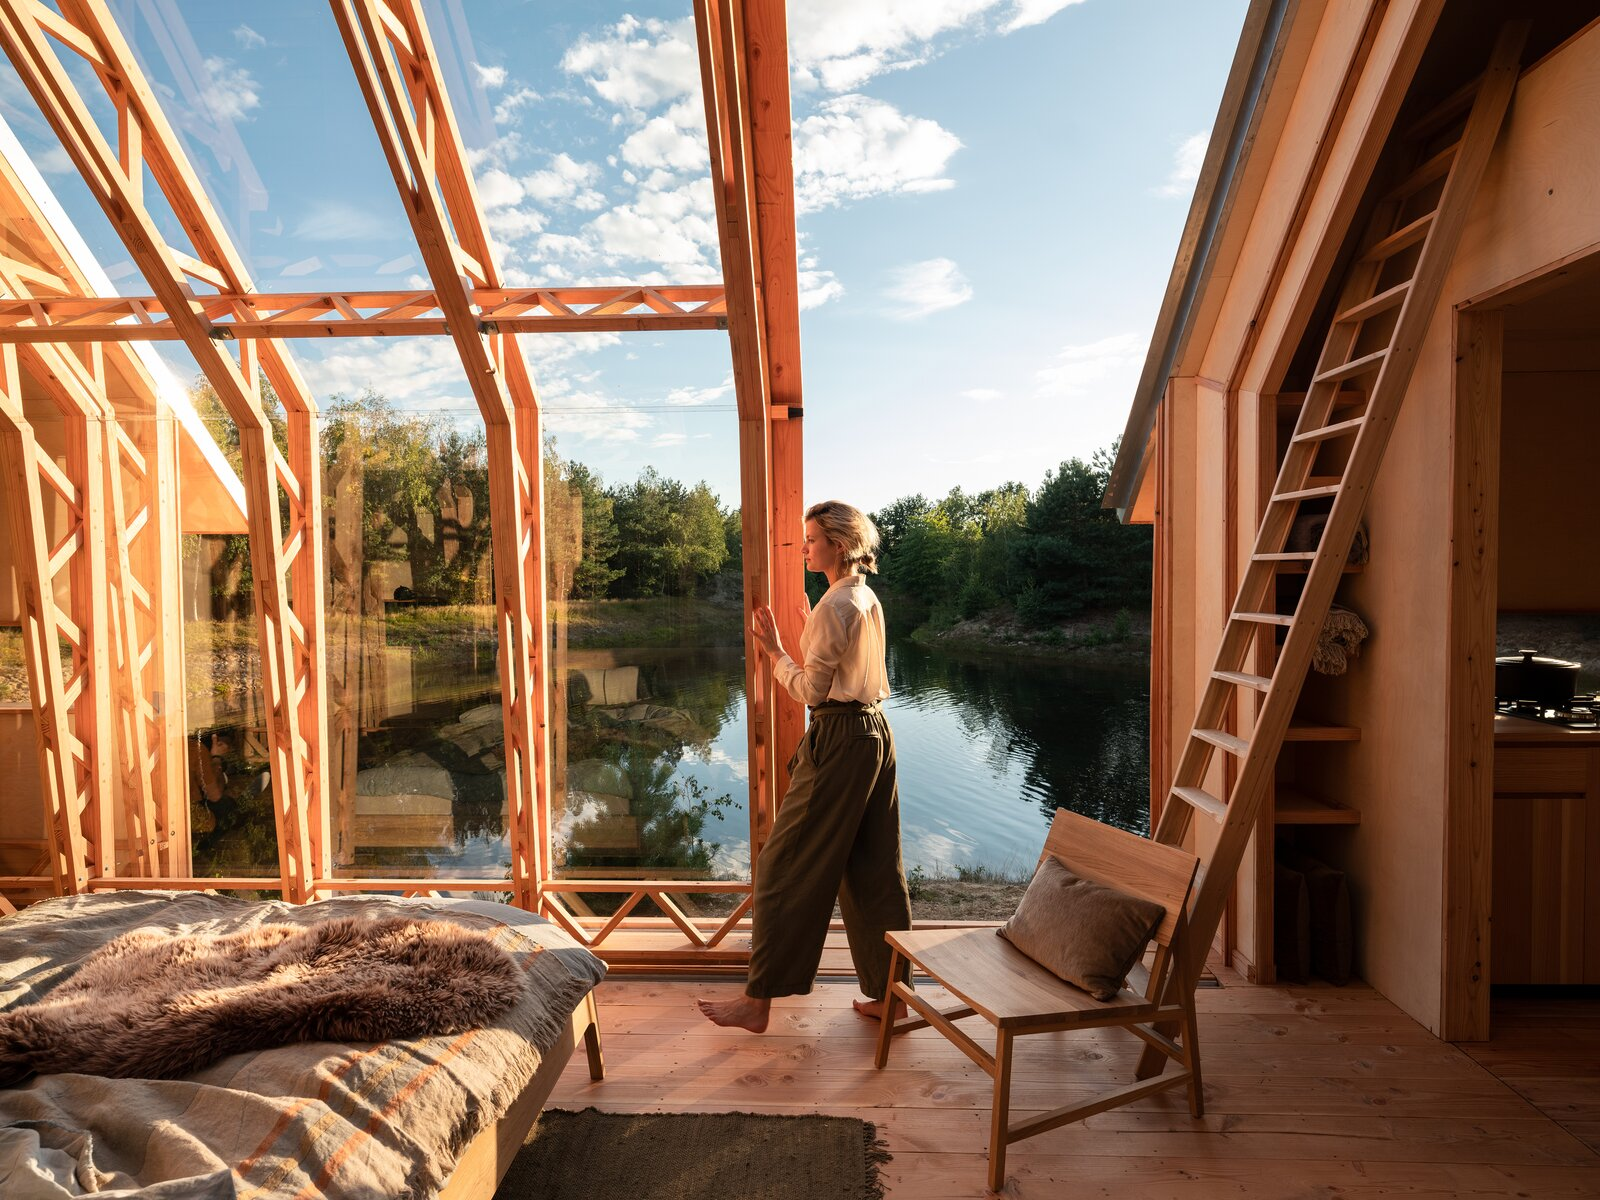 Bedroom, Chair, Medium Hardwood Floor, and Bed When the weather allows, the glass walls can be wheeled aside, leaving the living space open to the outdoors.   Photo 12 of 21 in This Ultra-Versatile Prefab Cabin Can Shed Its Layers of Wood and Glass